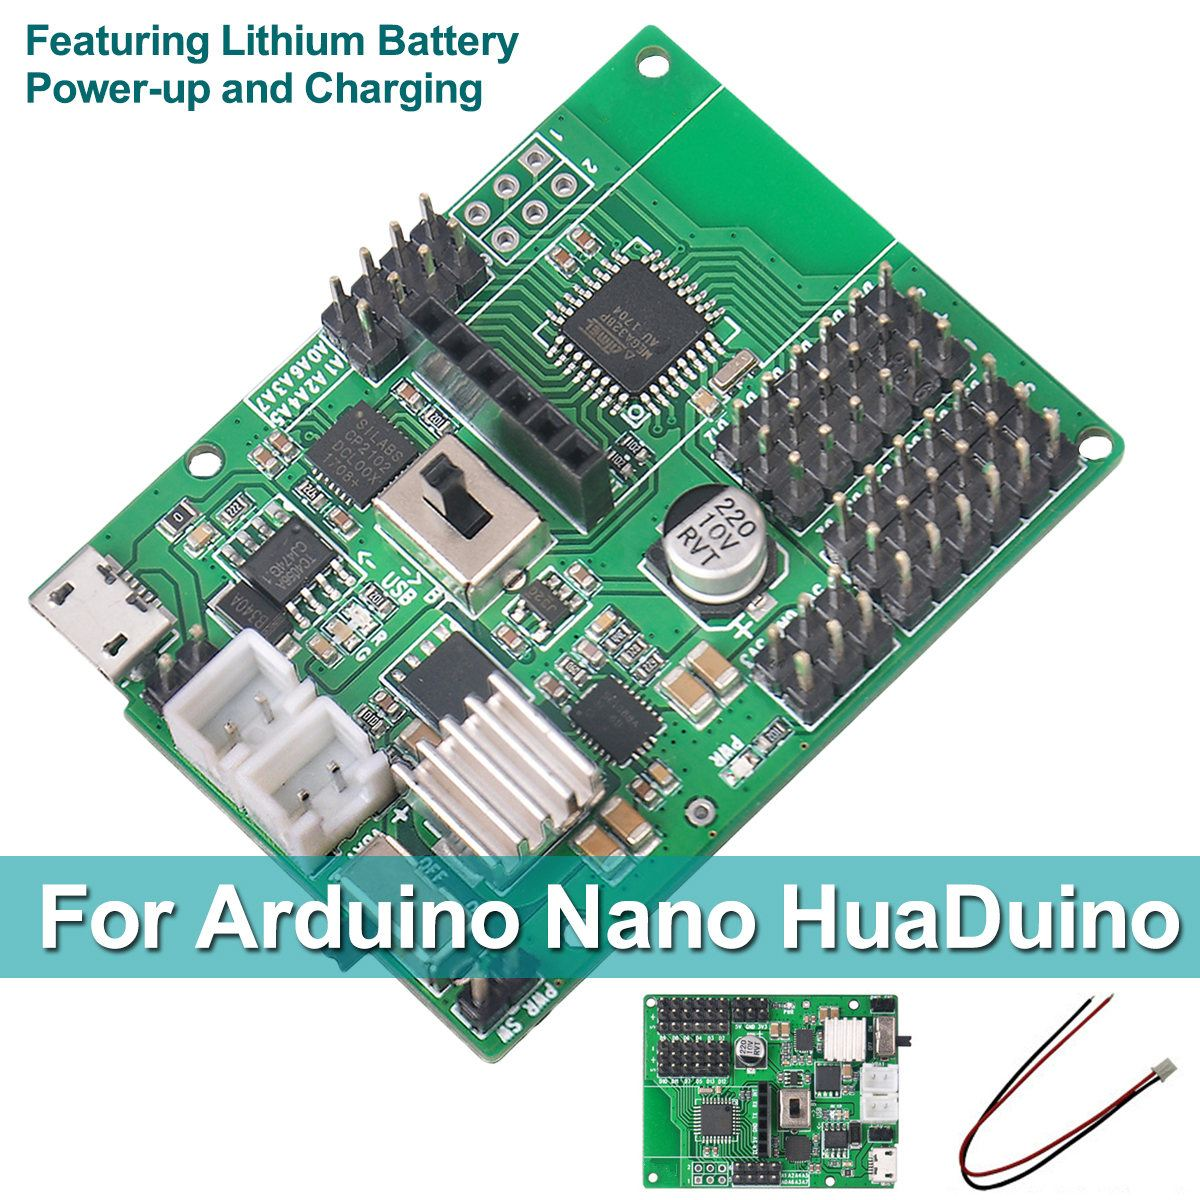 For Arduino for Nano HuaDuino Robot Trolley Programming Development Board Battery Power-up and ChargingFor Arduino for Nano HuaDuino Robot Trolley Programming Development Board Battery Power-up and Charging